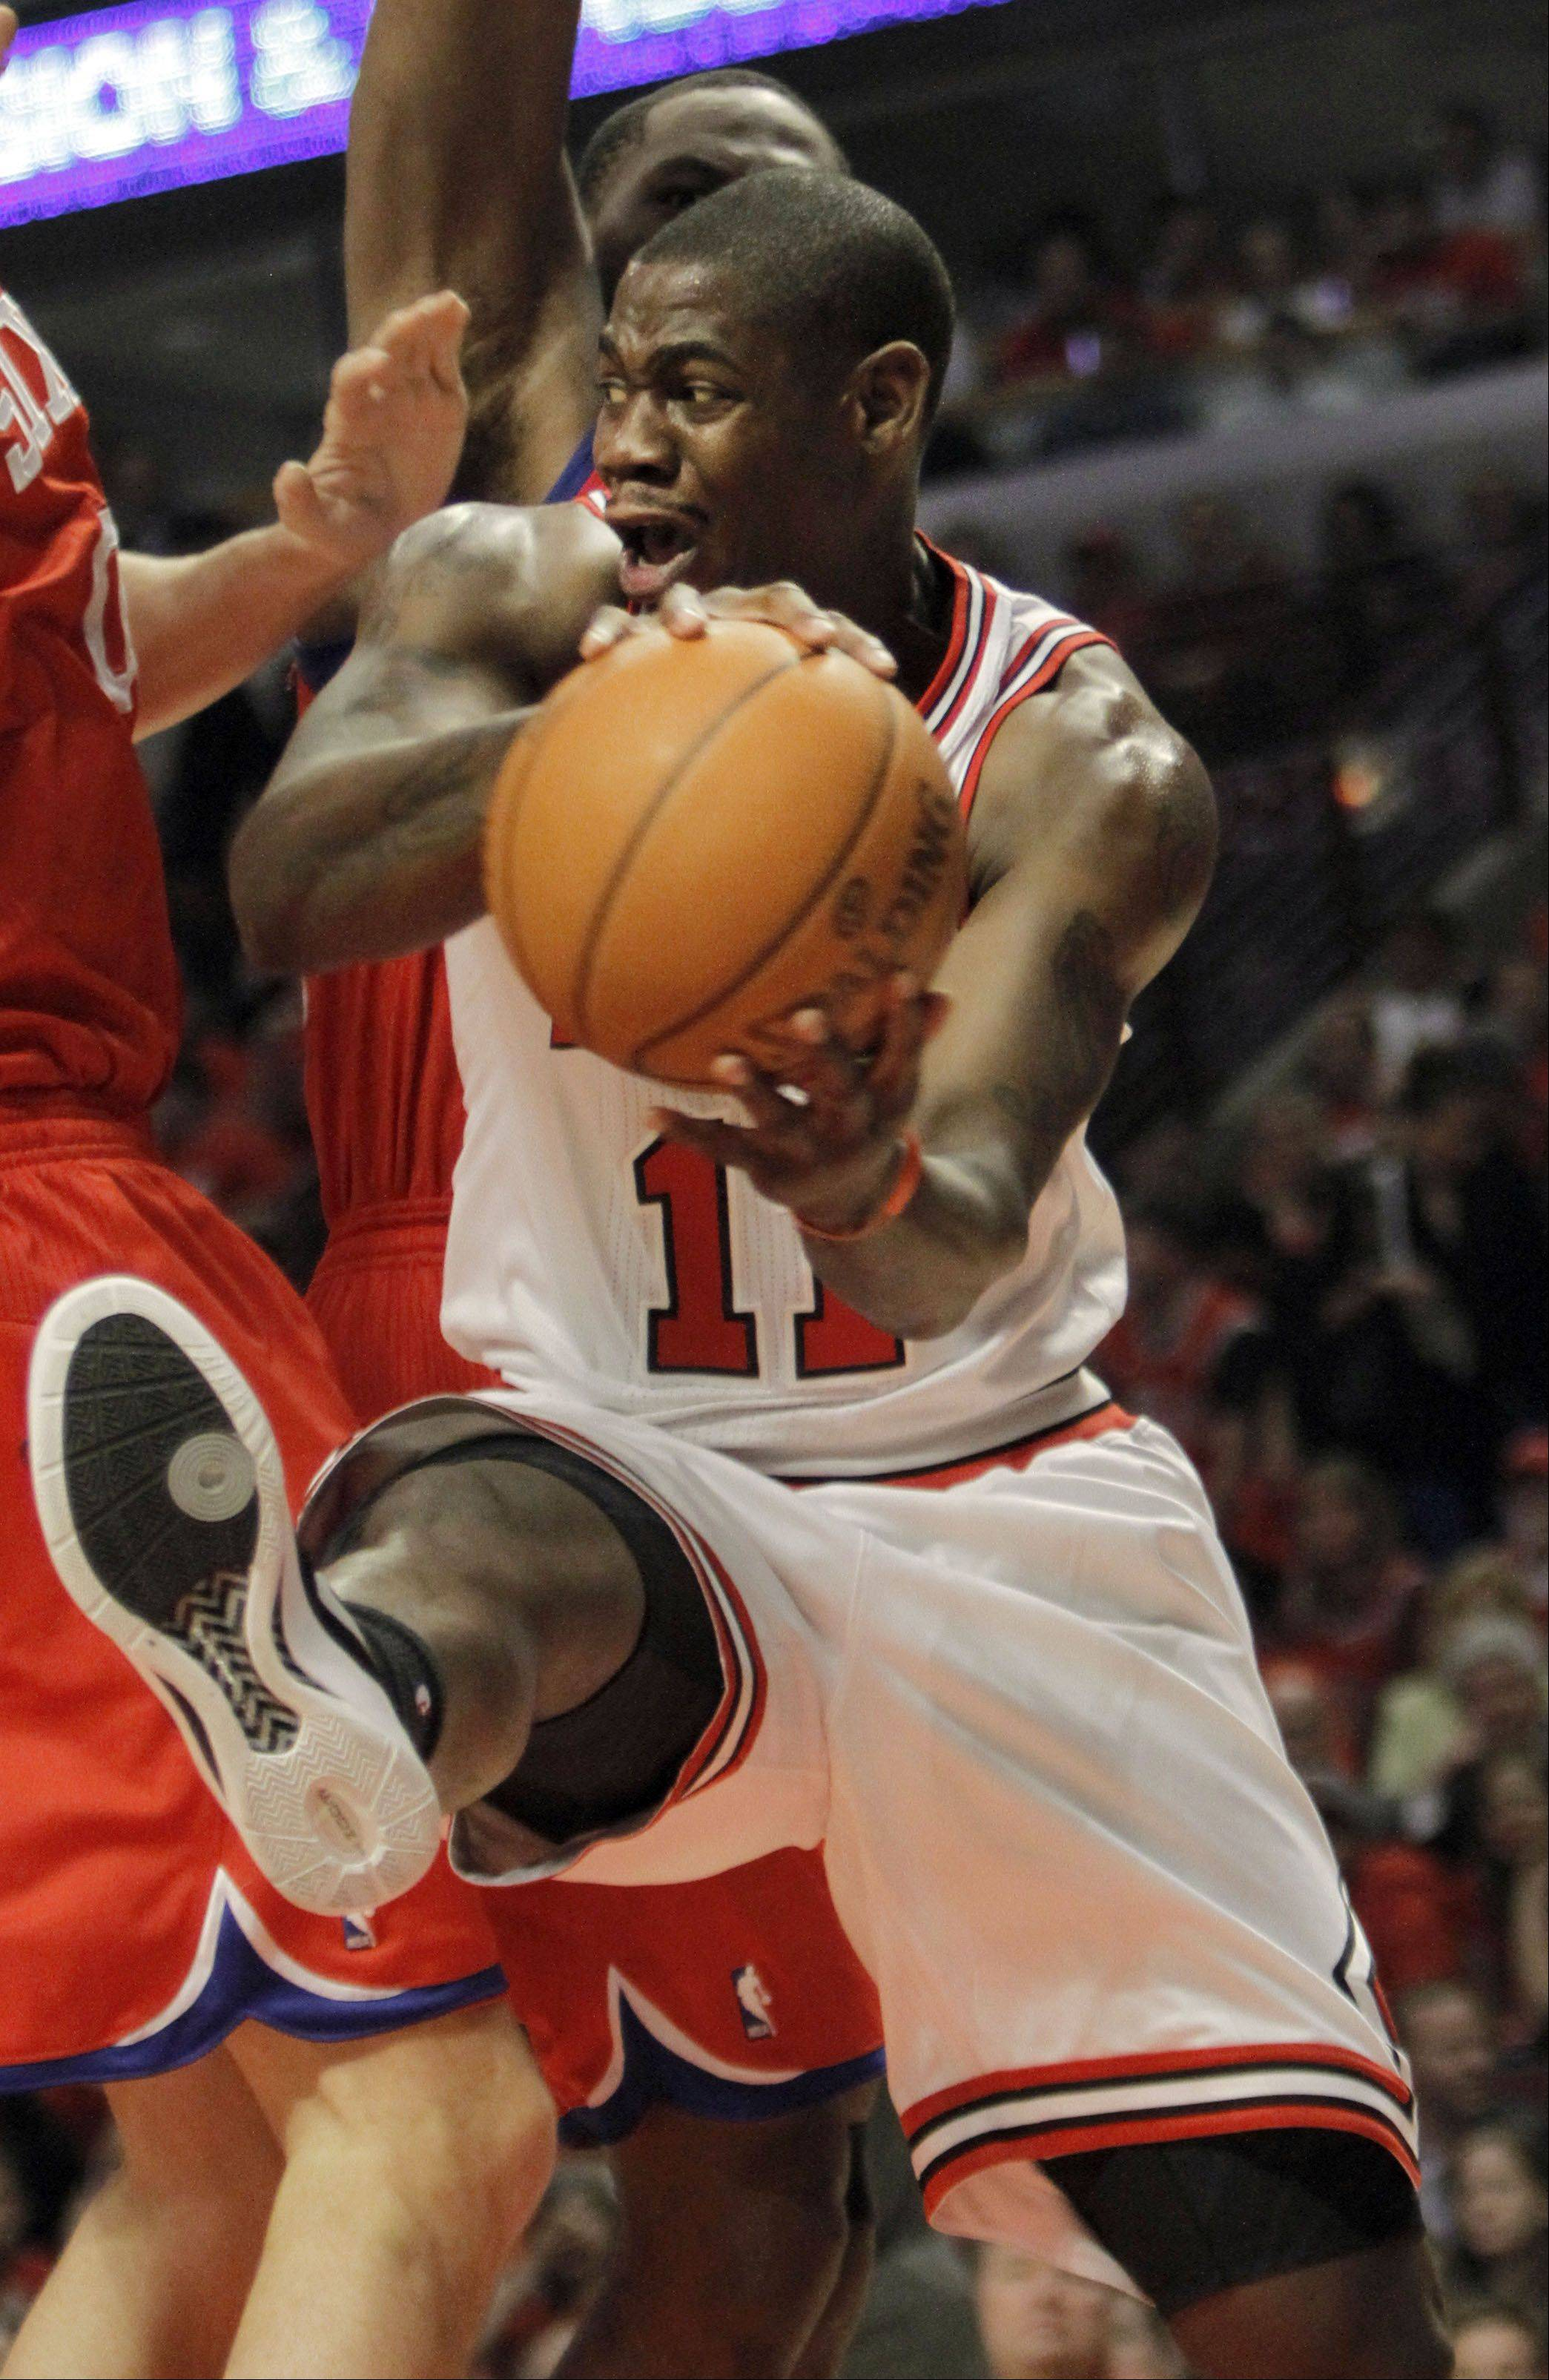 Chicago Bulls' Ronnie Brewer drives to the hoop.